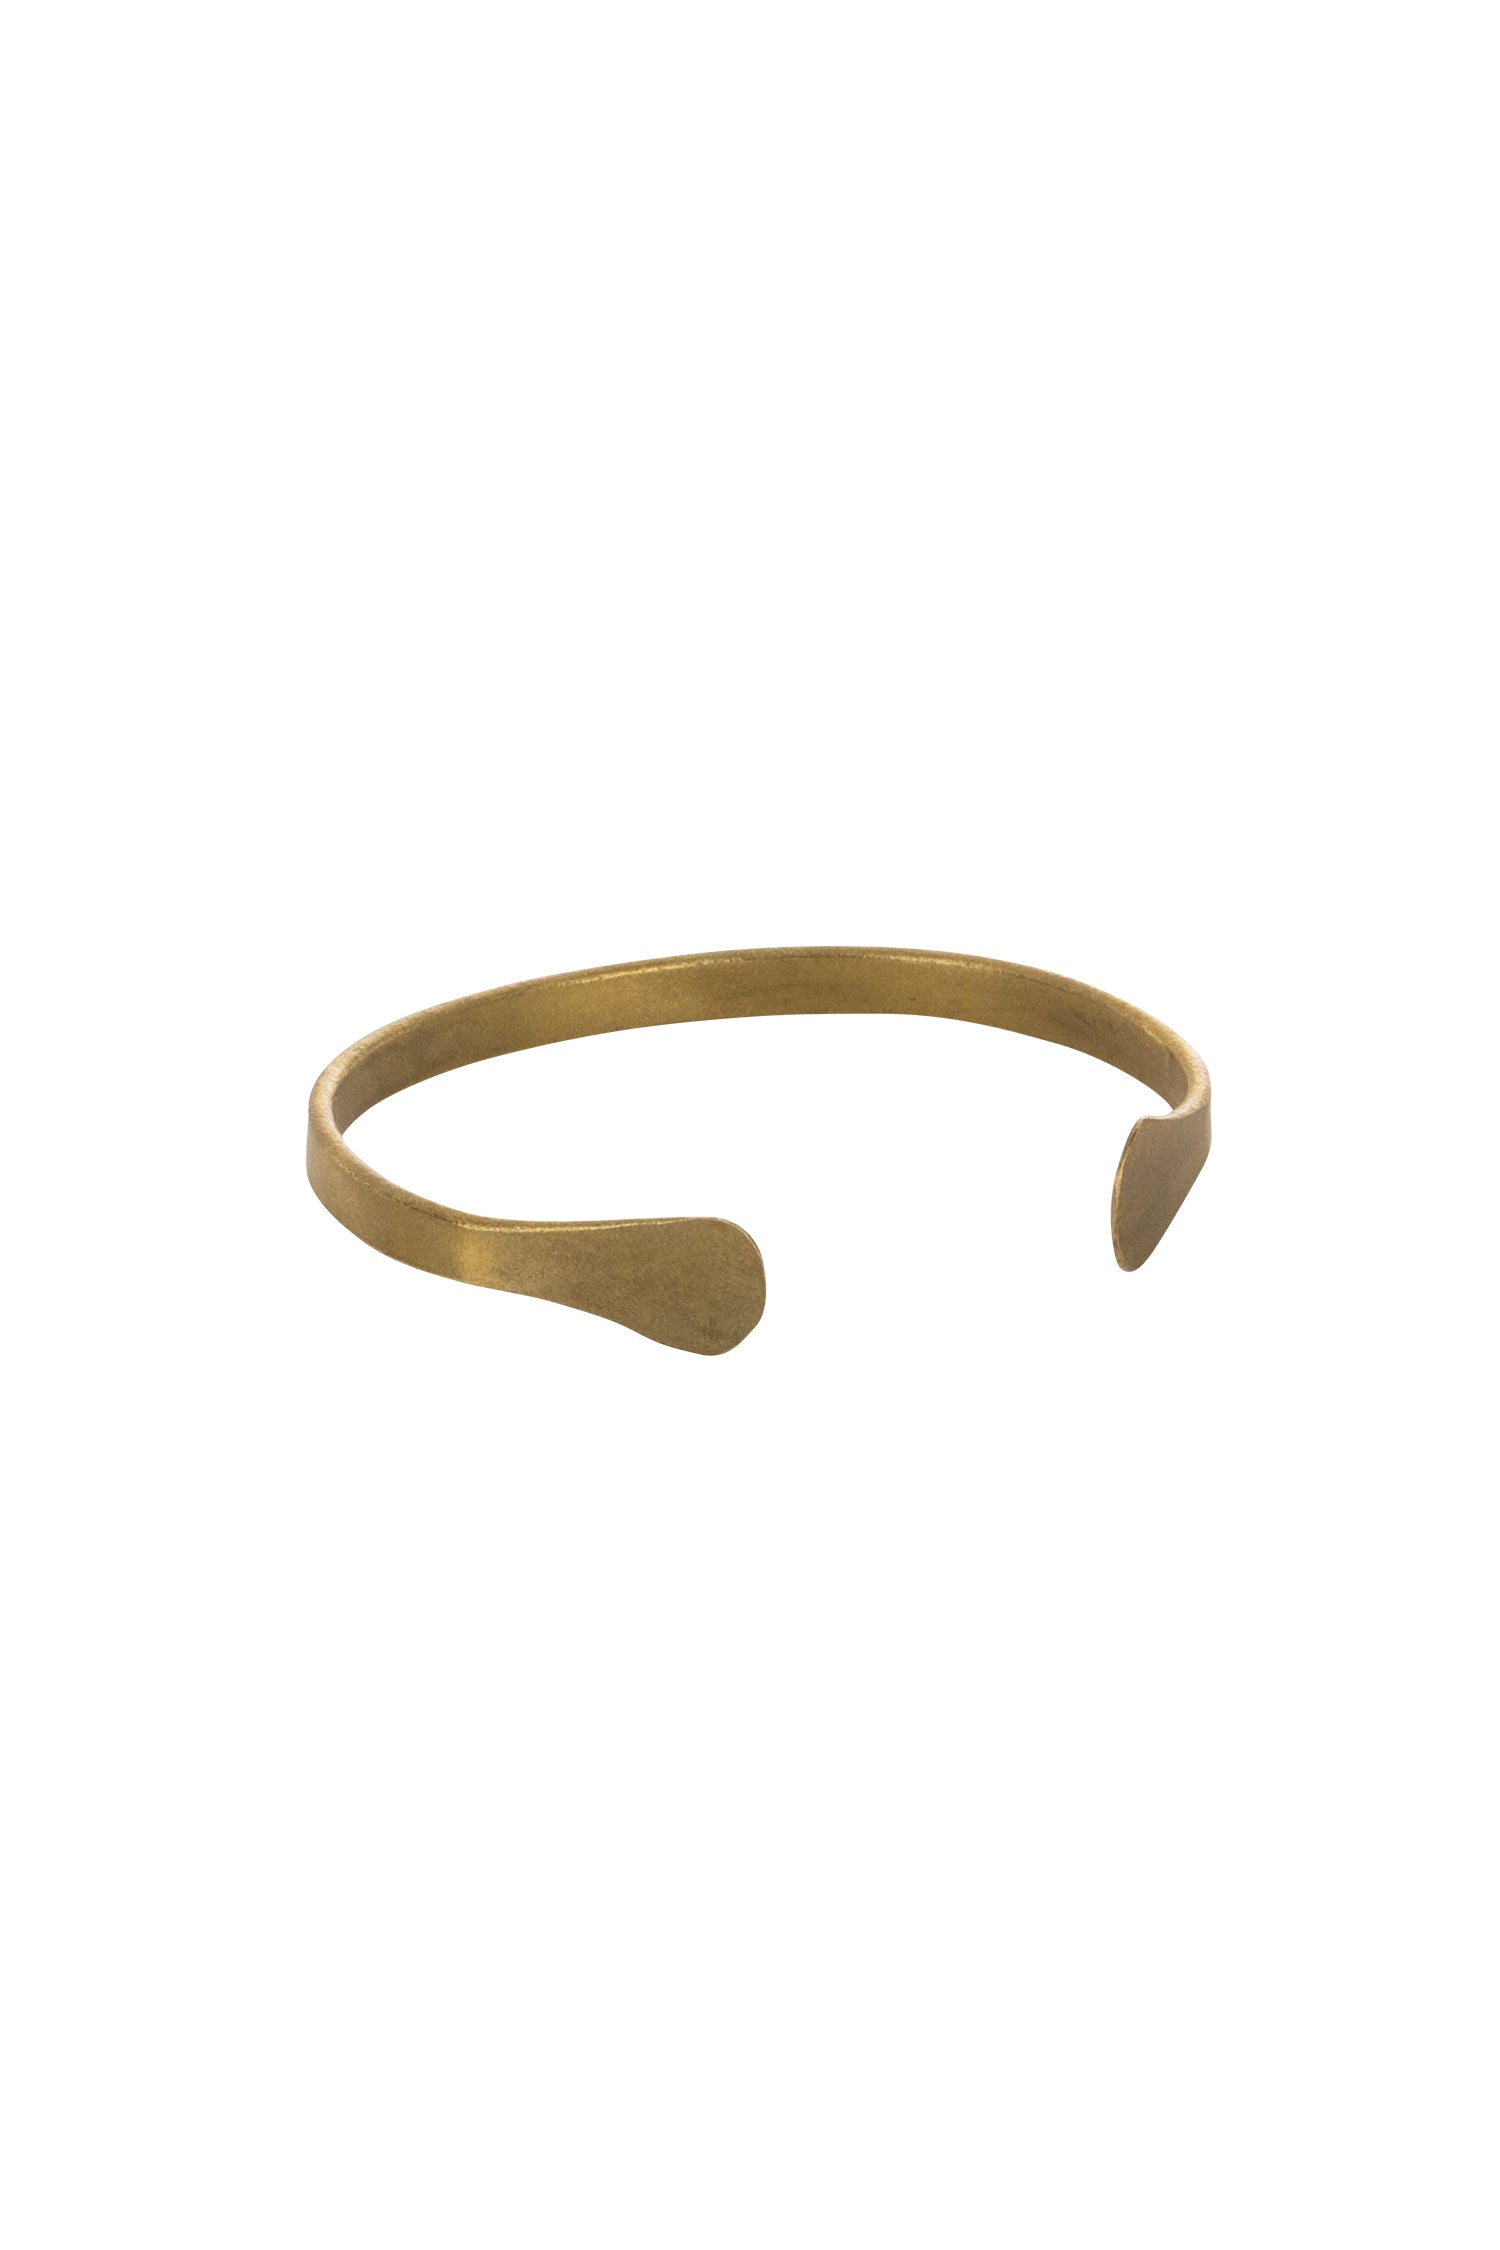 Narrow Cuff in Brass-Bracelet-Sancho's Dress